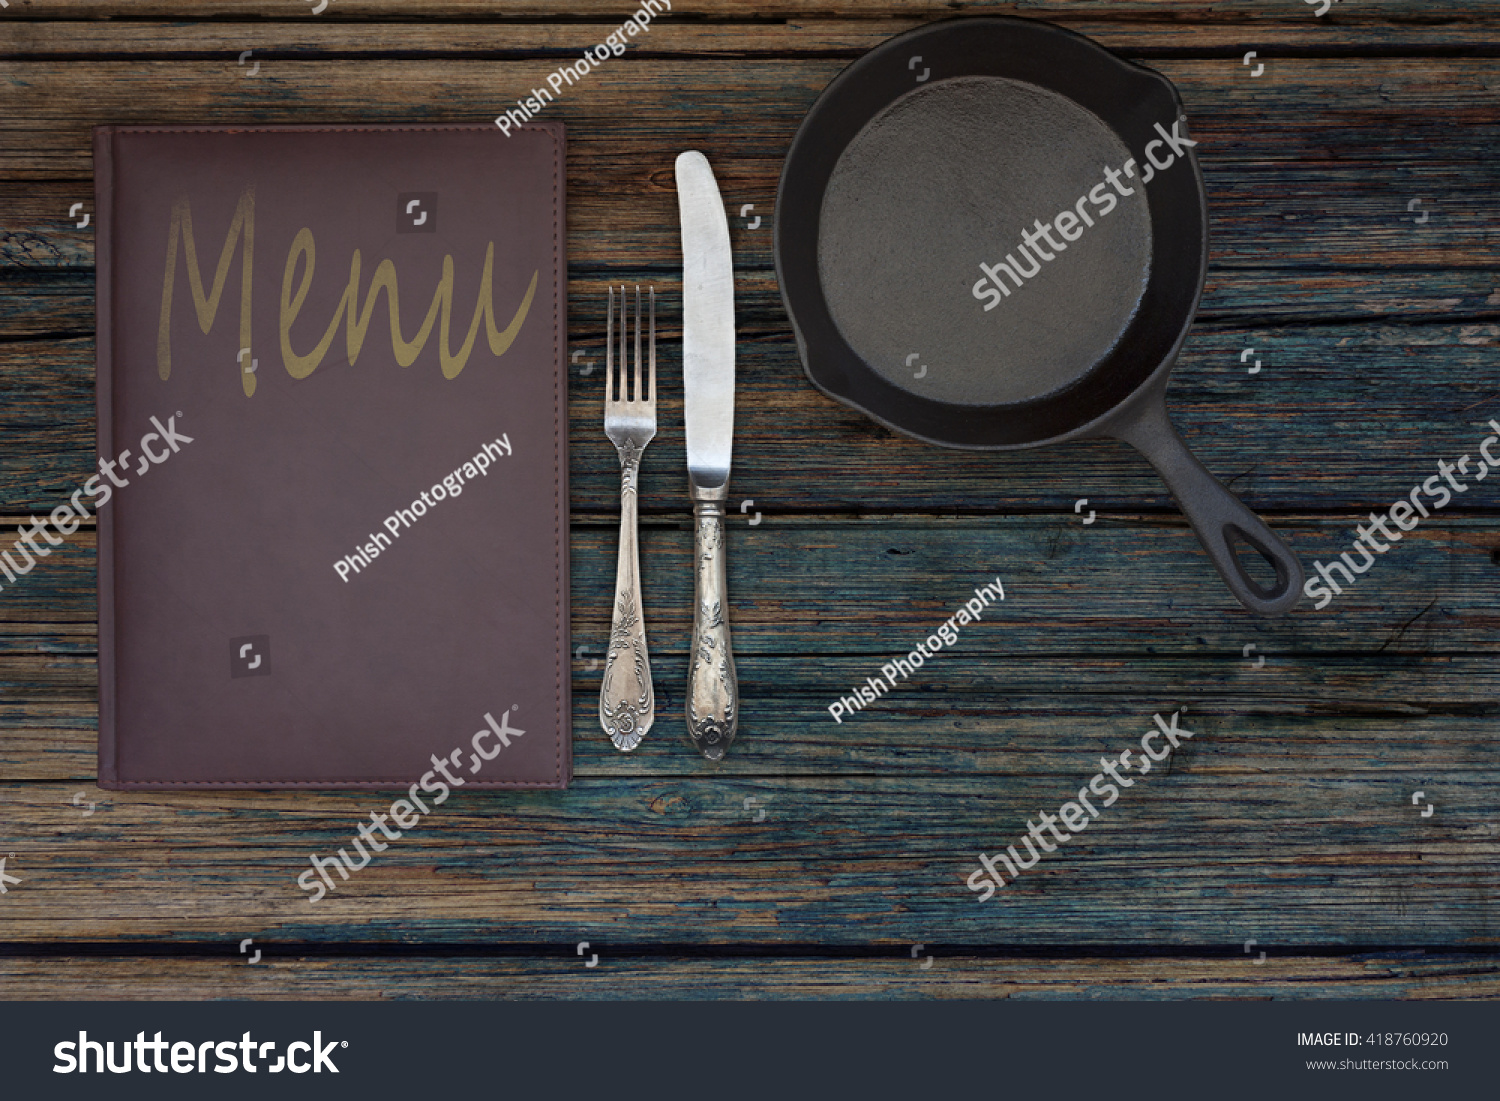 Vintage leather restaurant or cafe food menu with silverware or cutlery  including a fork and a